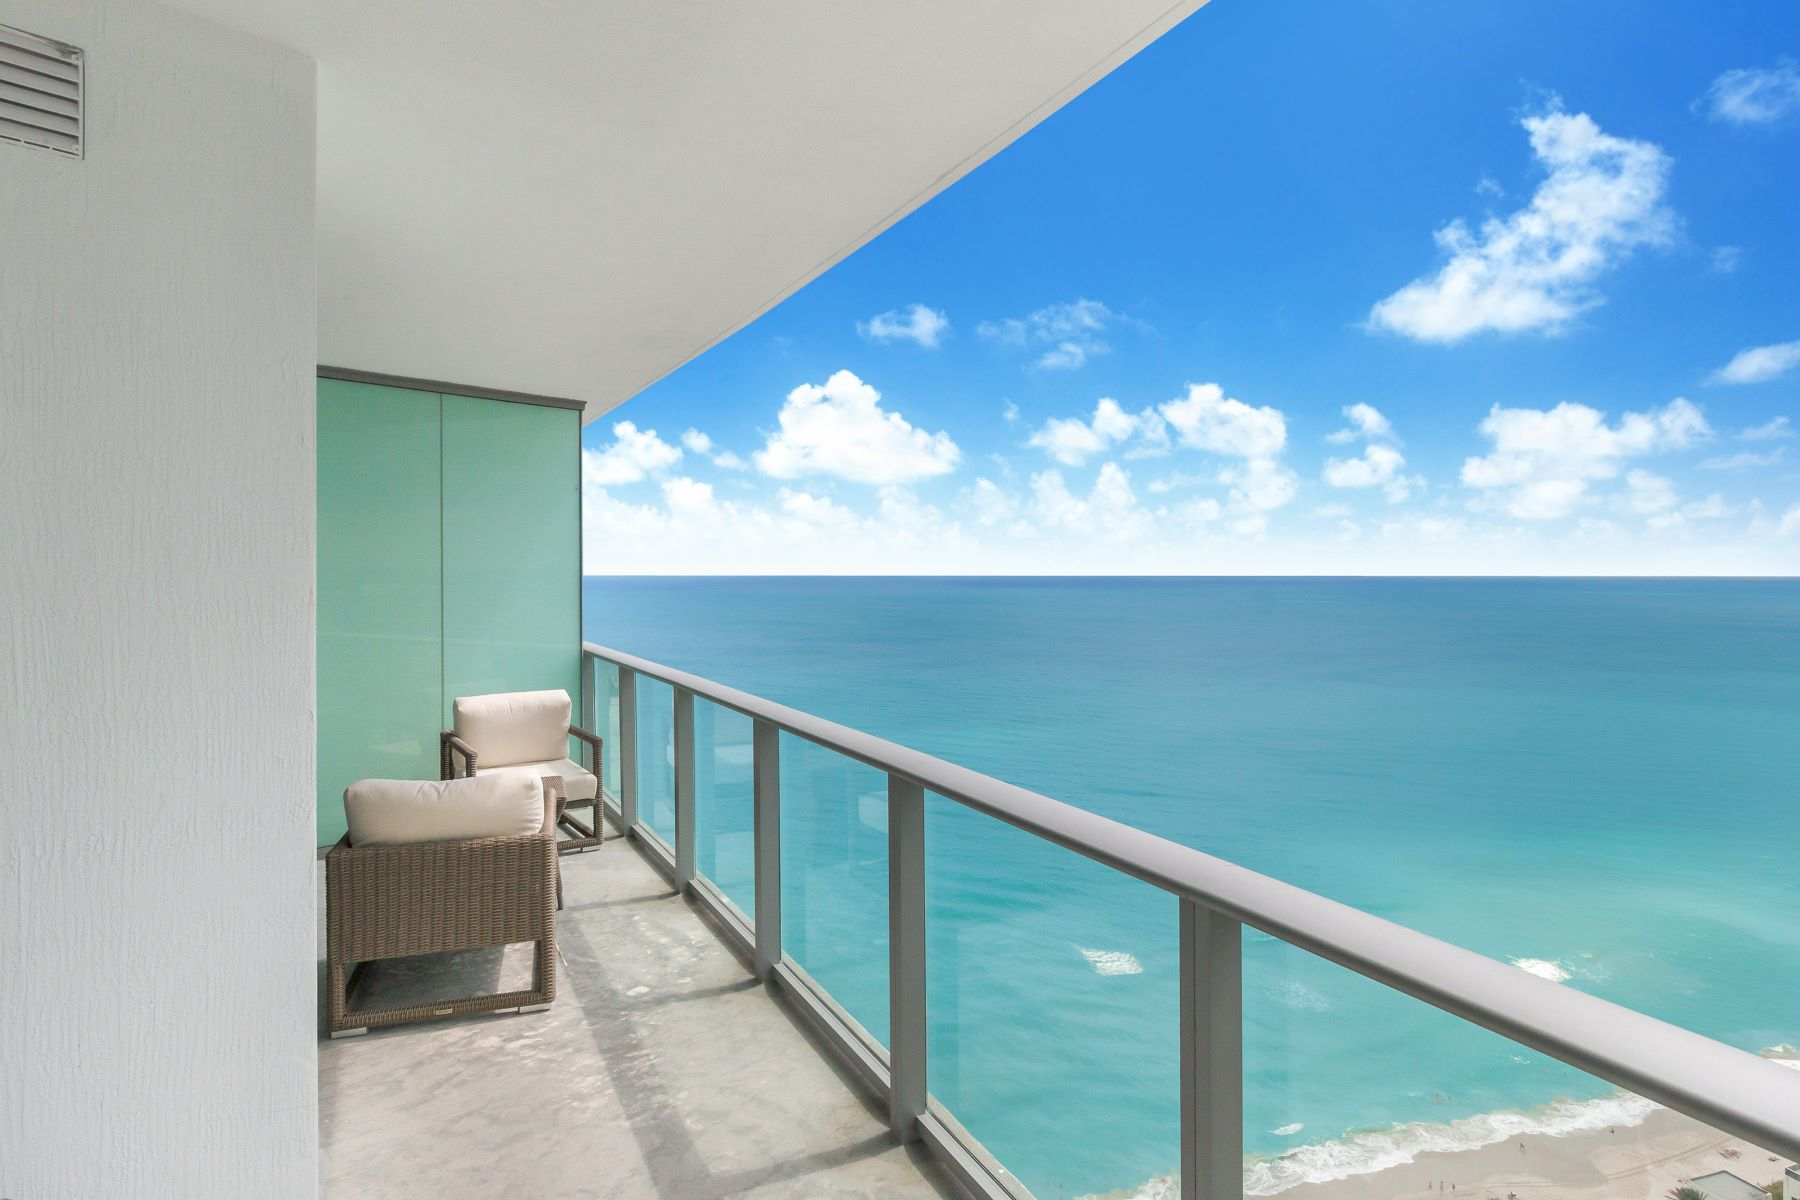 Condominium for Sale at 4111 S Ocean Drive 4111 S Ocean Drive 3307 Hollywood, Florida 33019 United States